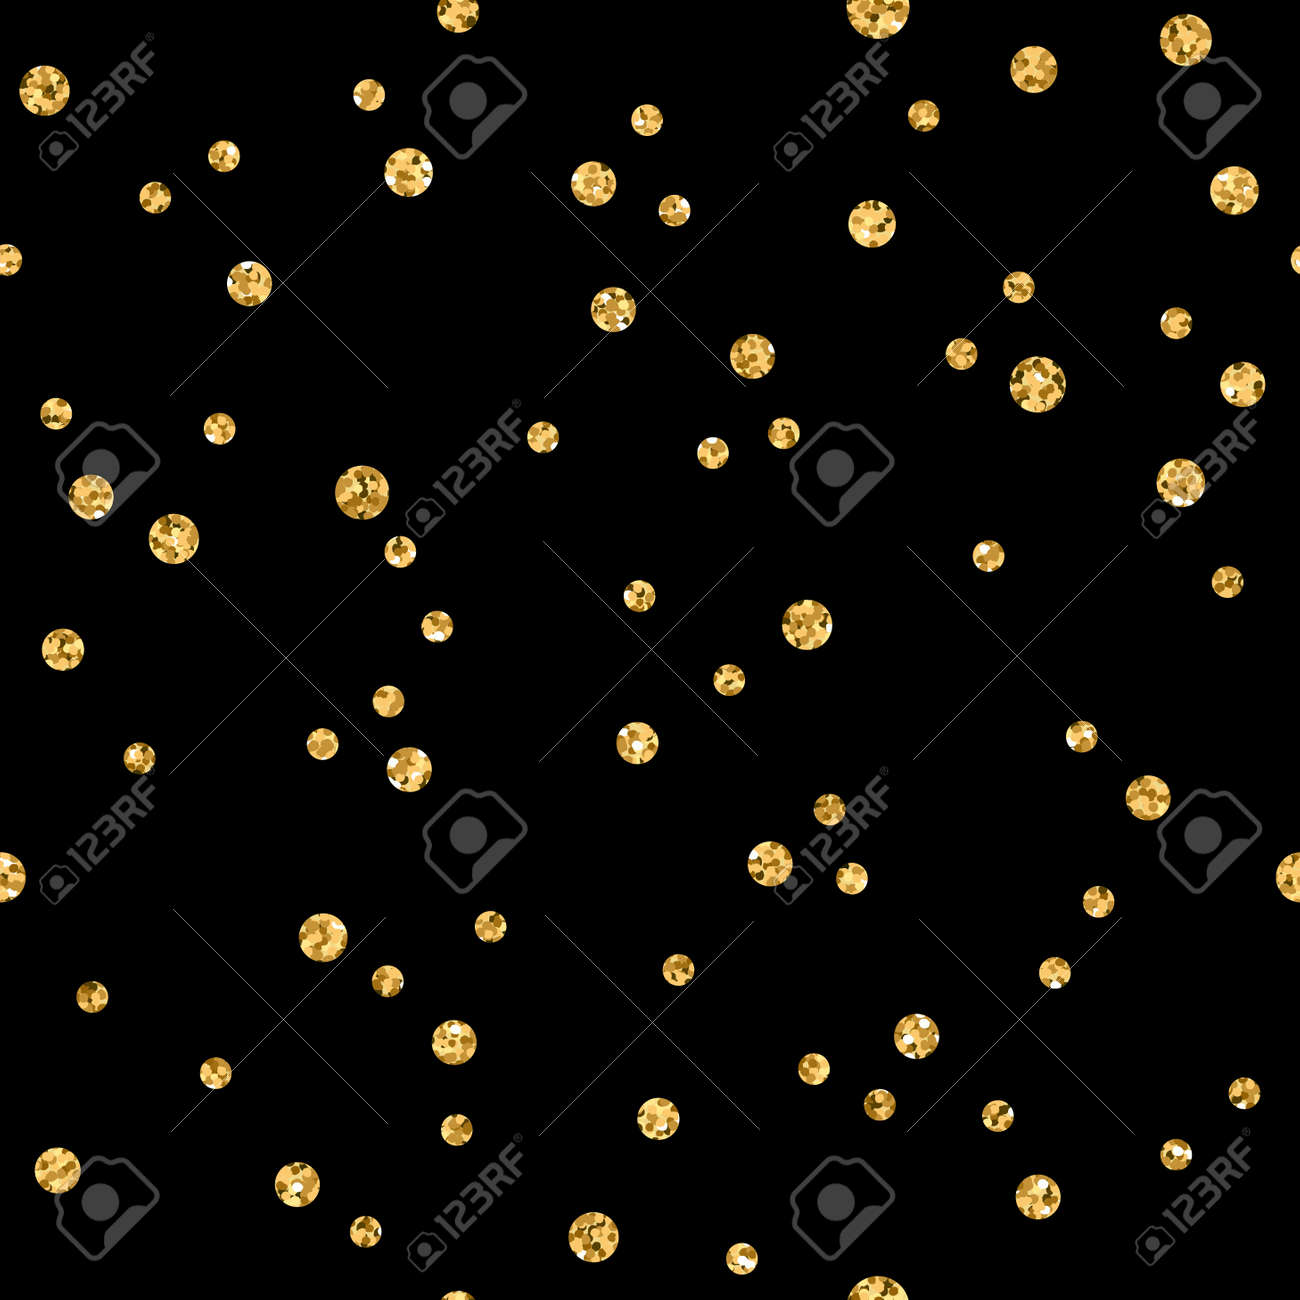 polka dots seamless pattern gold glitter and black template